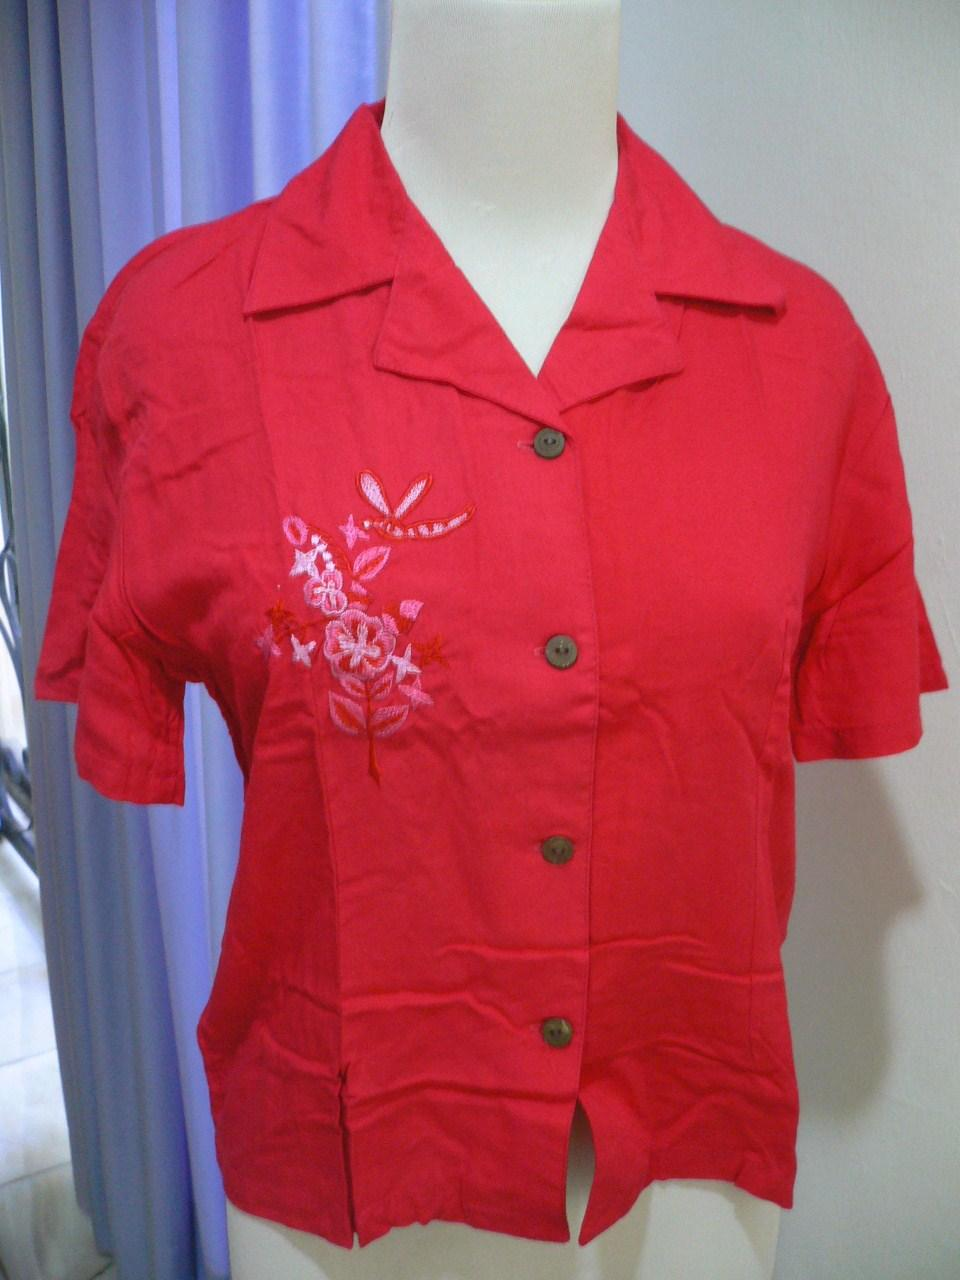 Free Shipping-'SEASON' Lady Embrose Shirt -Red